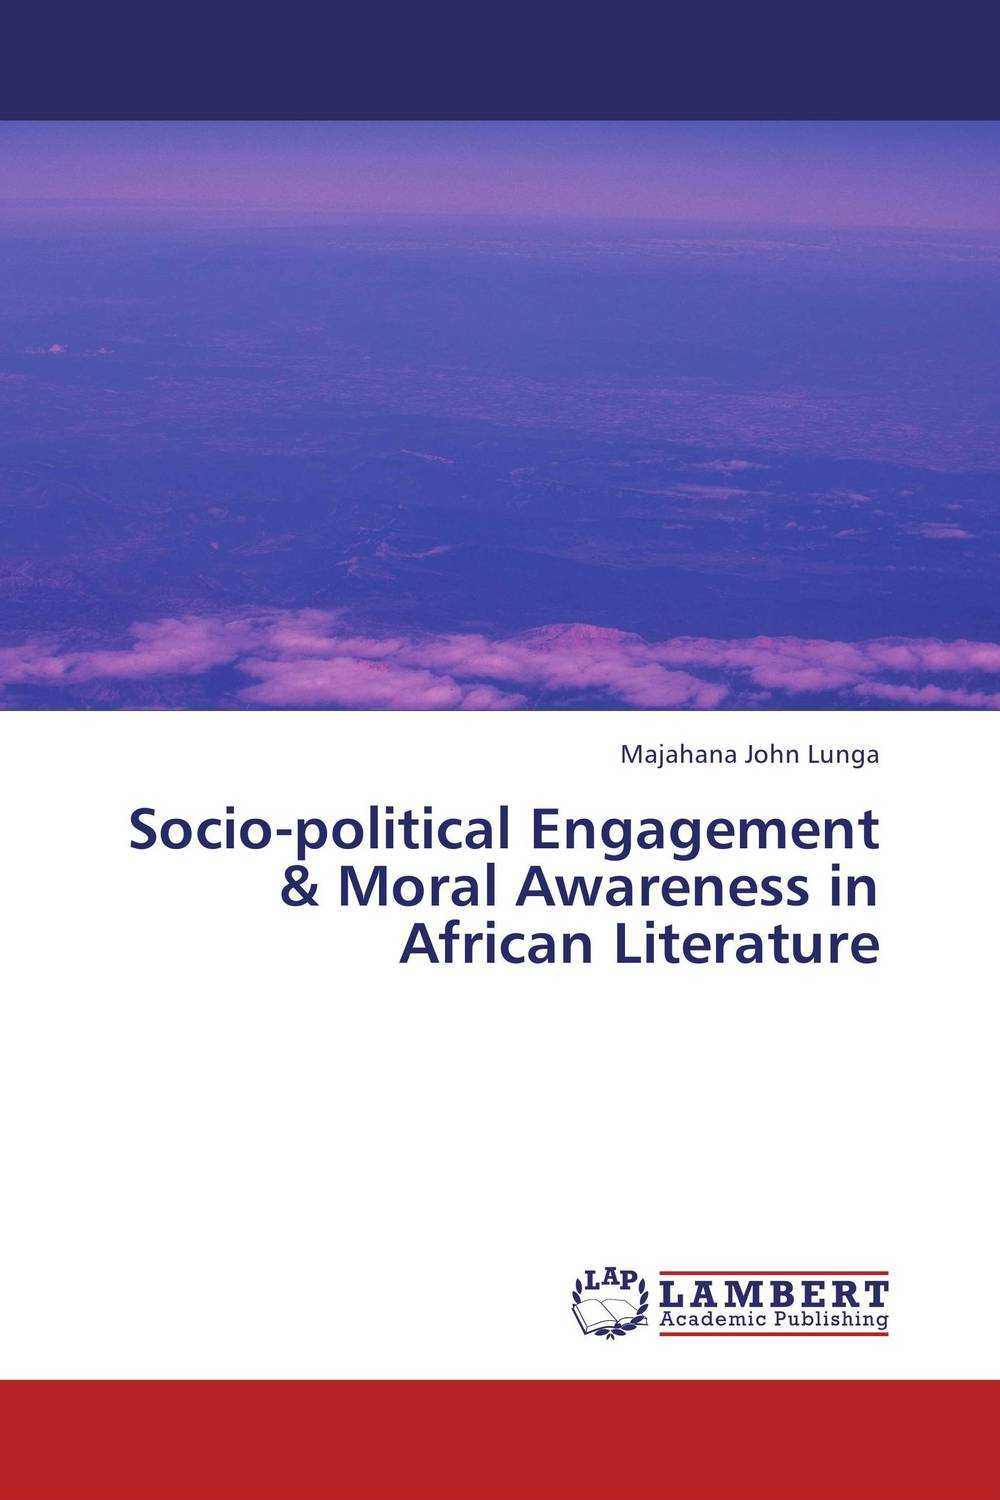 Socio-political Engagement & Moral Awareness in African Literature soyinka wole of africa